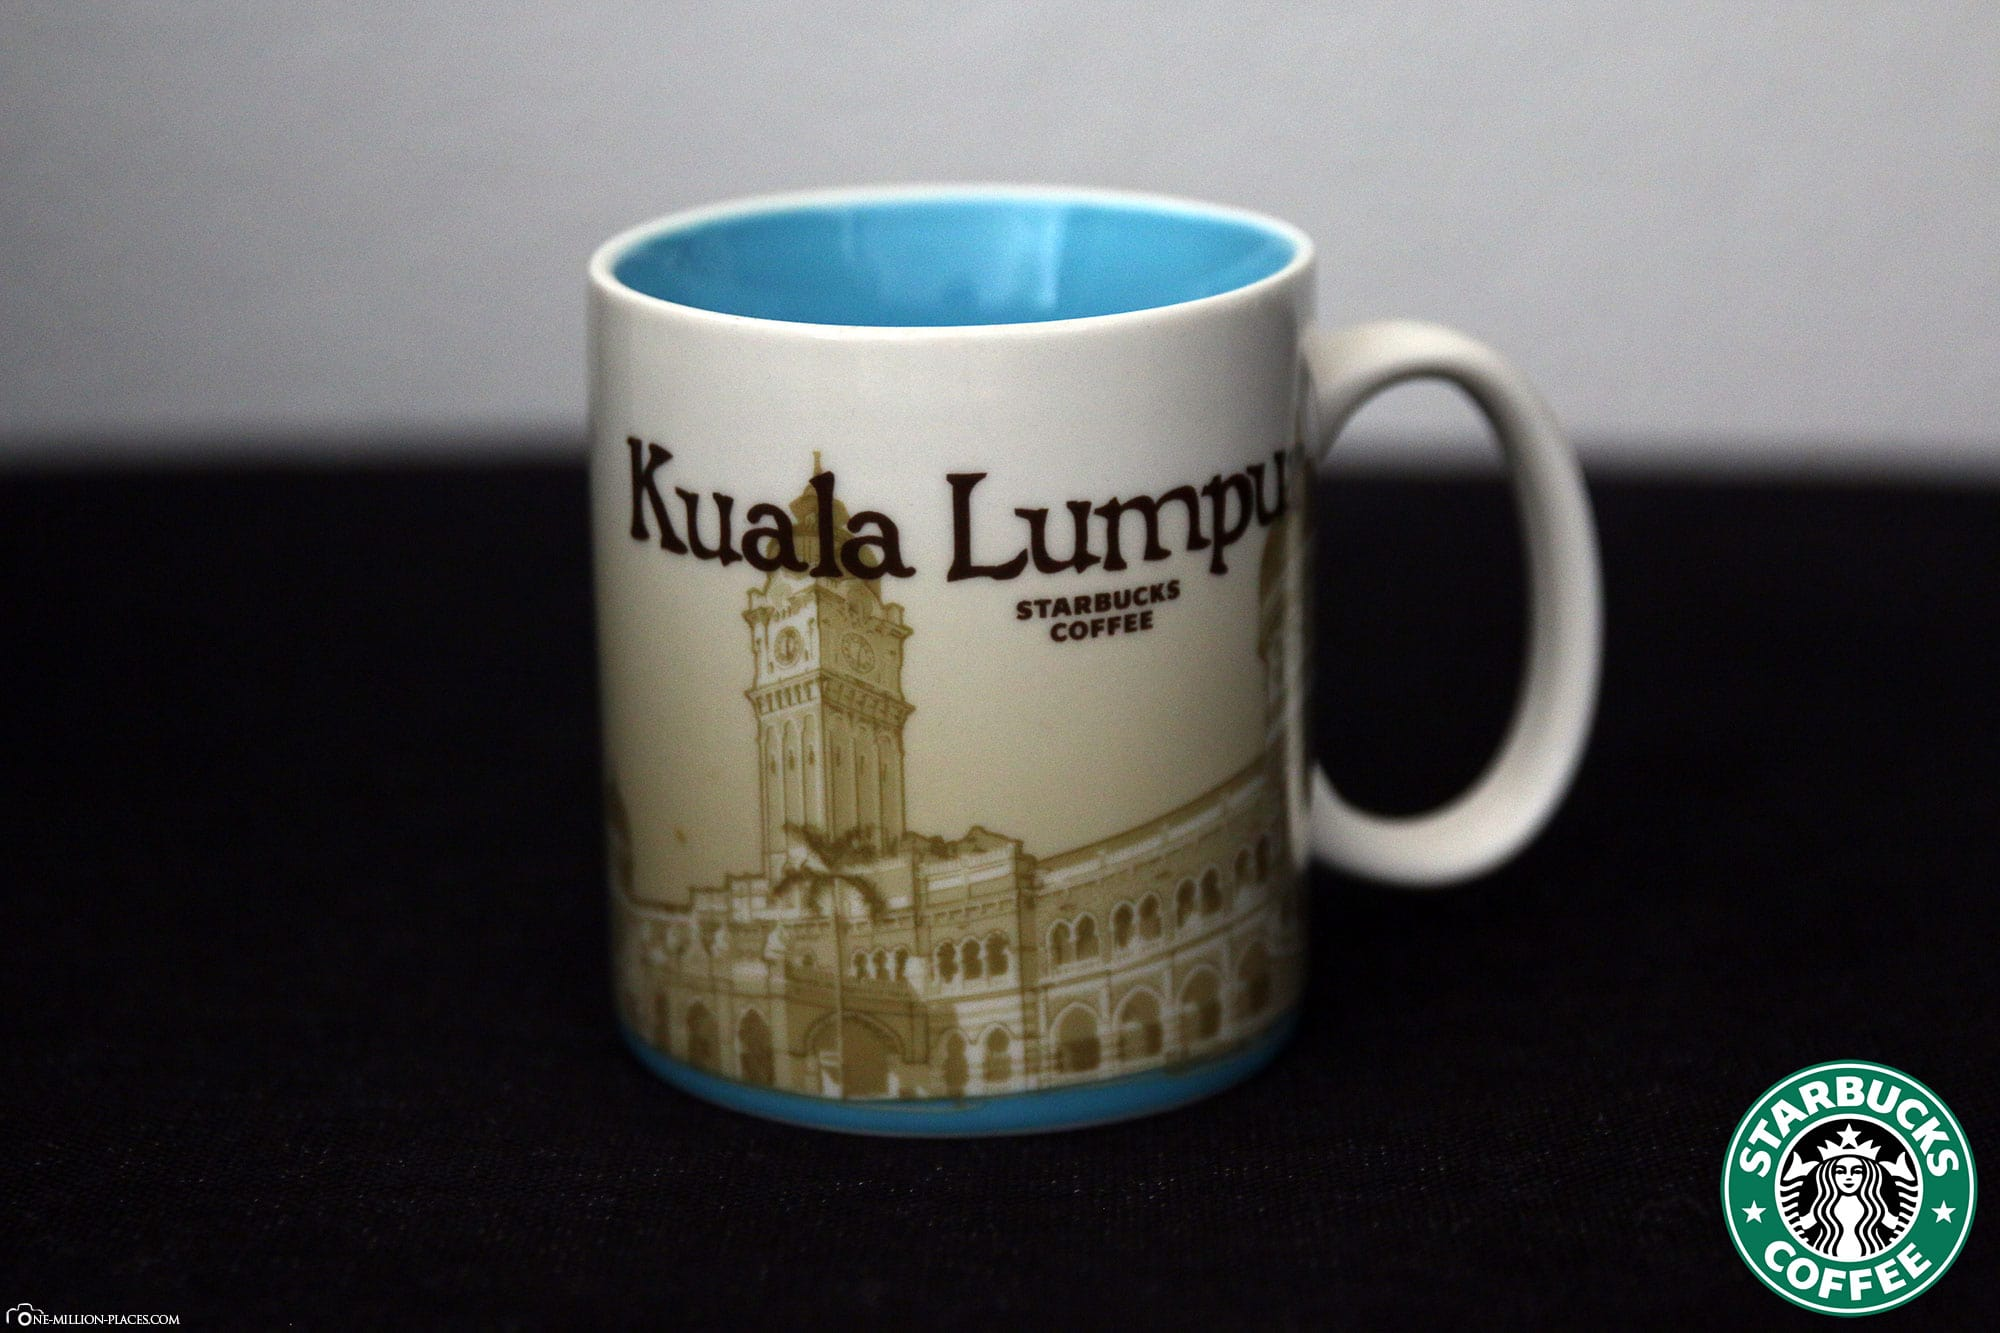 Kuala Lumpur, Starbucks Cup, Global Icon Series, City Mugs, Collection, Malaysia, Travelreport